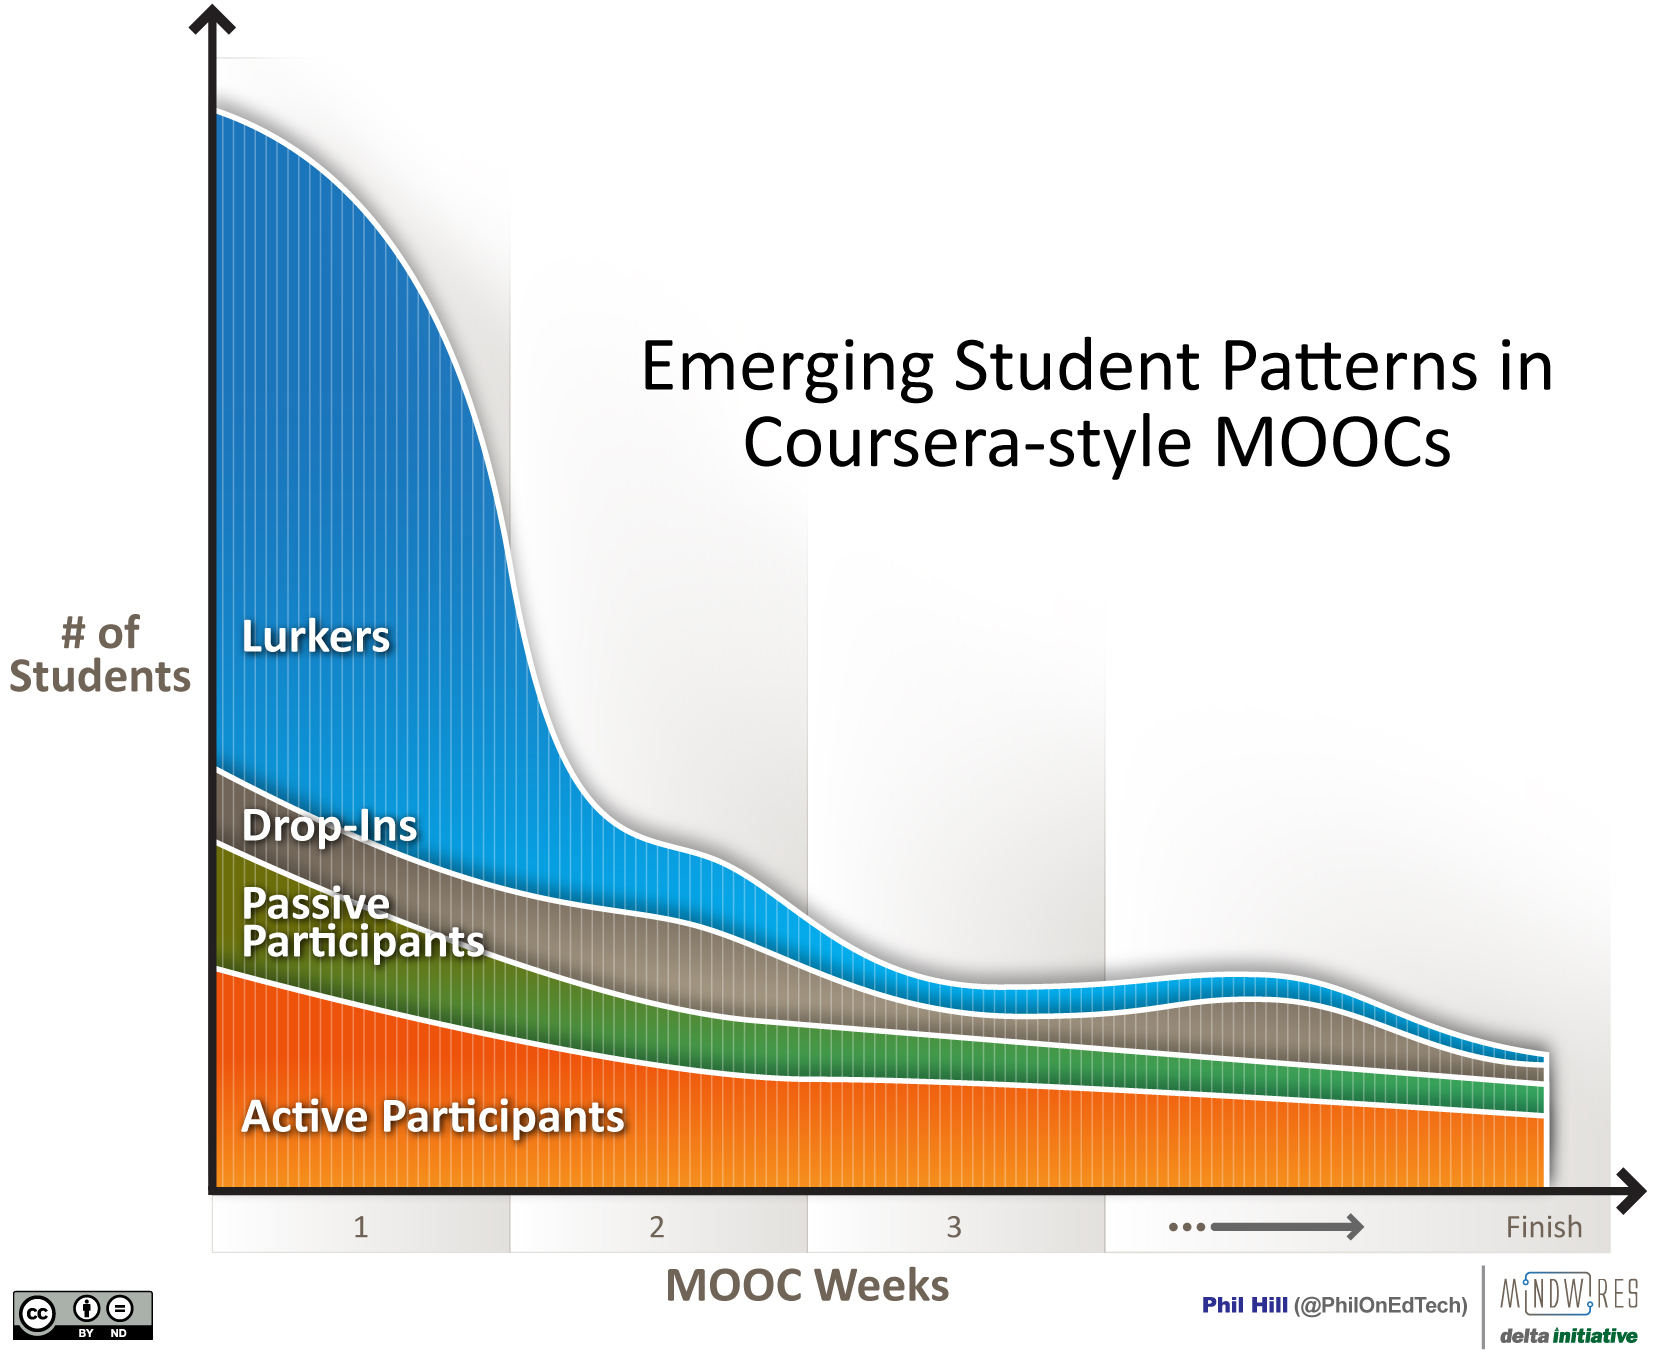 Graphical view of student patterns in MOOCs